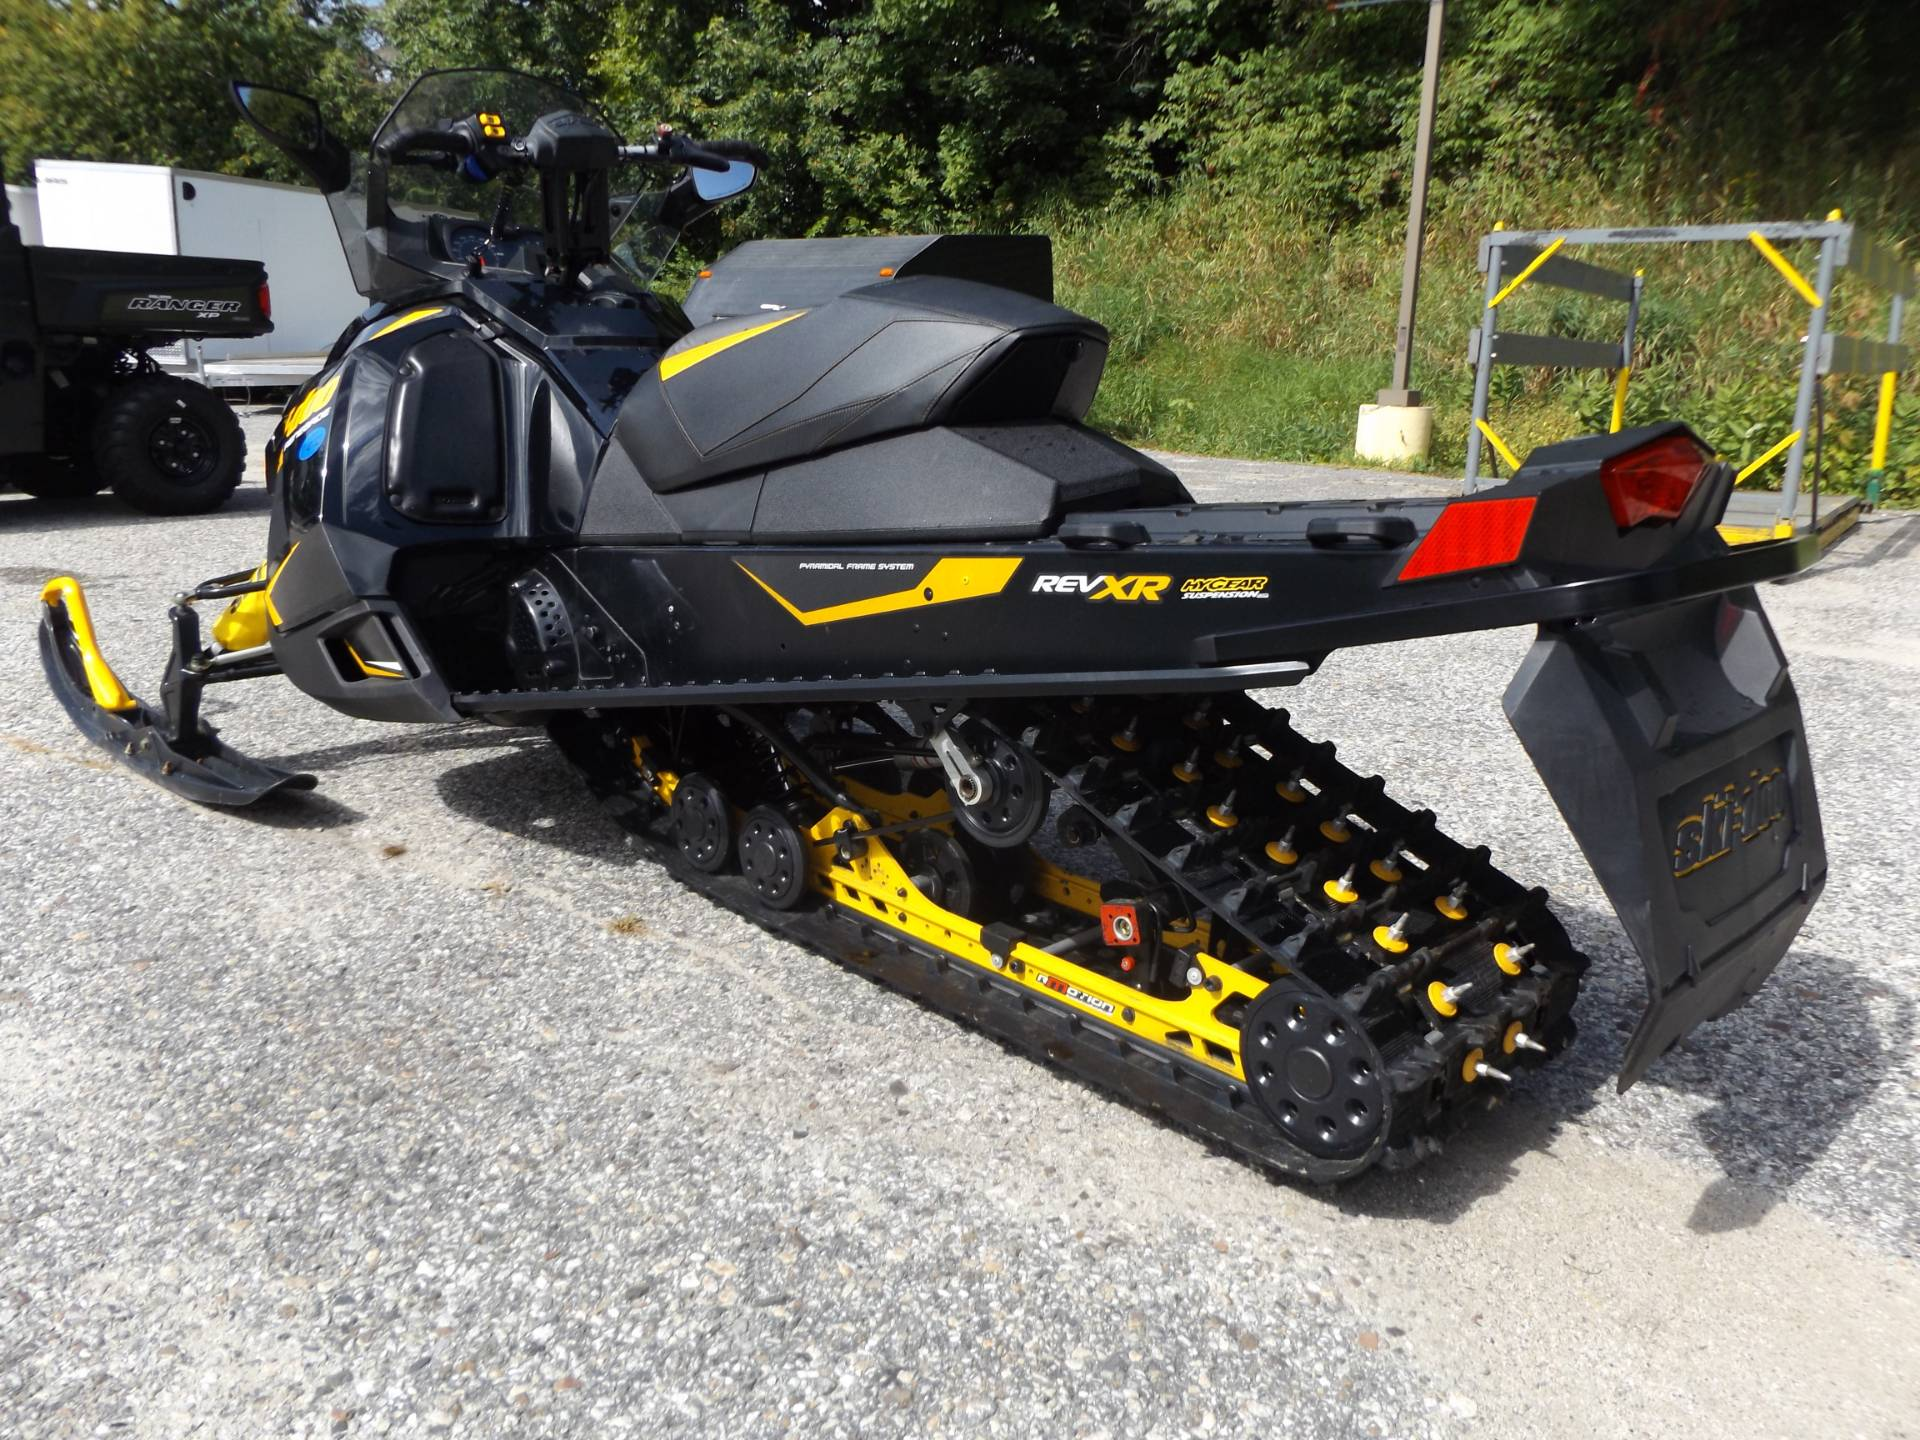 2013 Ski-Doo Renegade® Adrenaline 4-TEC 1200 in Lewiston, Maine